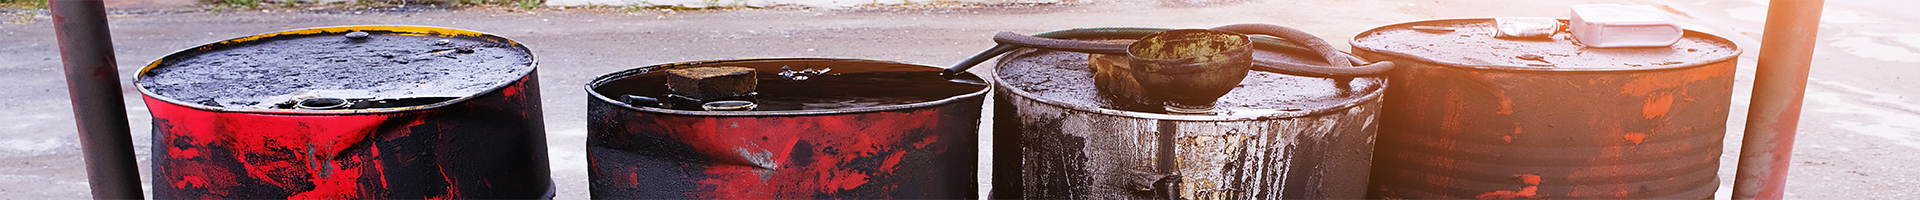 oil-and-grease-recycling